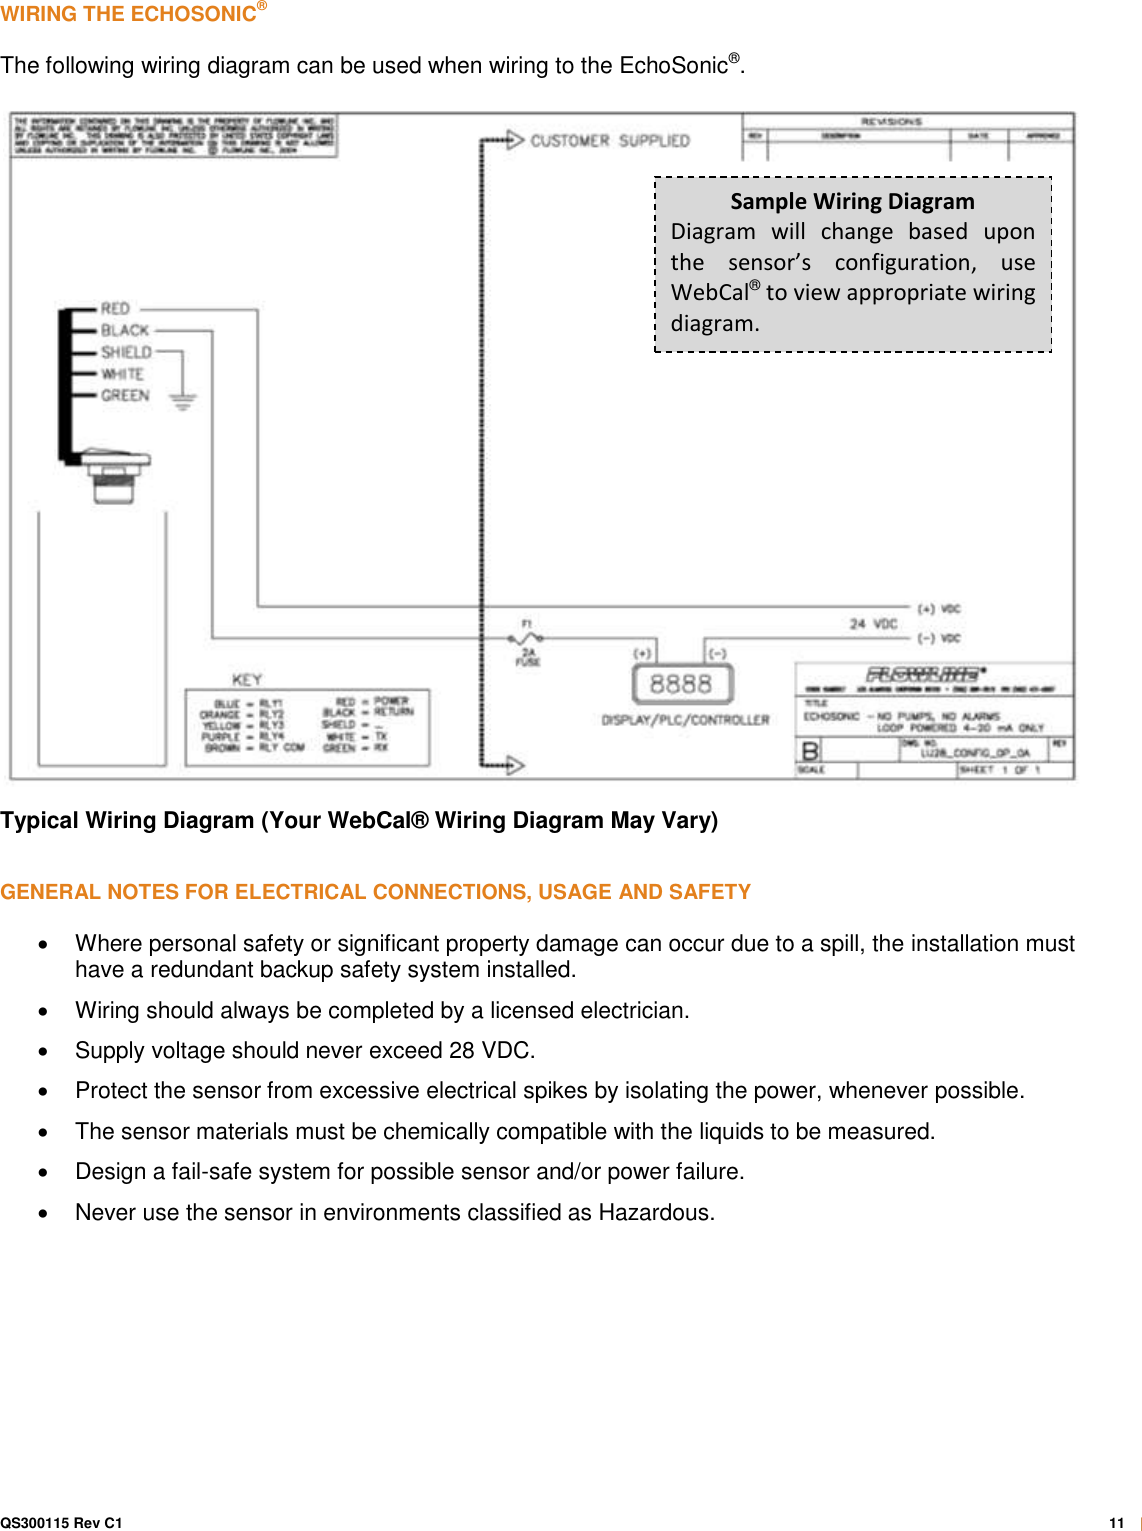 Feature Echo Sonic Ii Lu27 0 1 Quick Start Guide Echosonic Qsg Wiring Diagram Page 11 Of 12